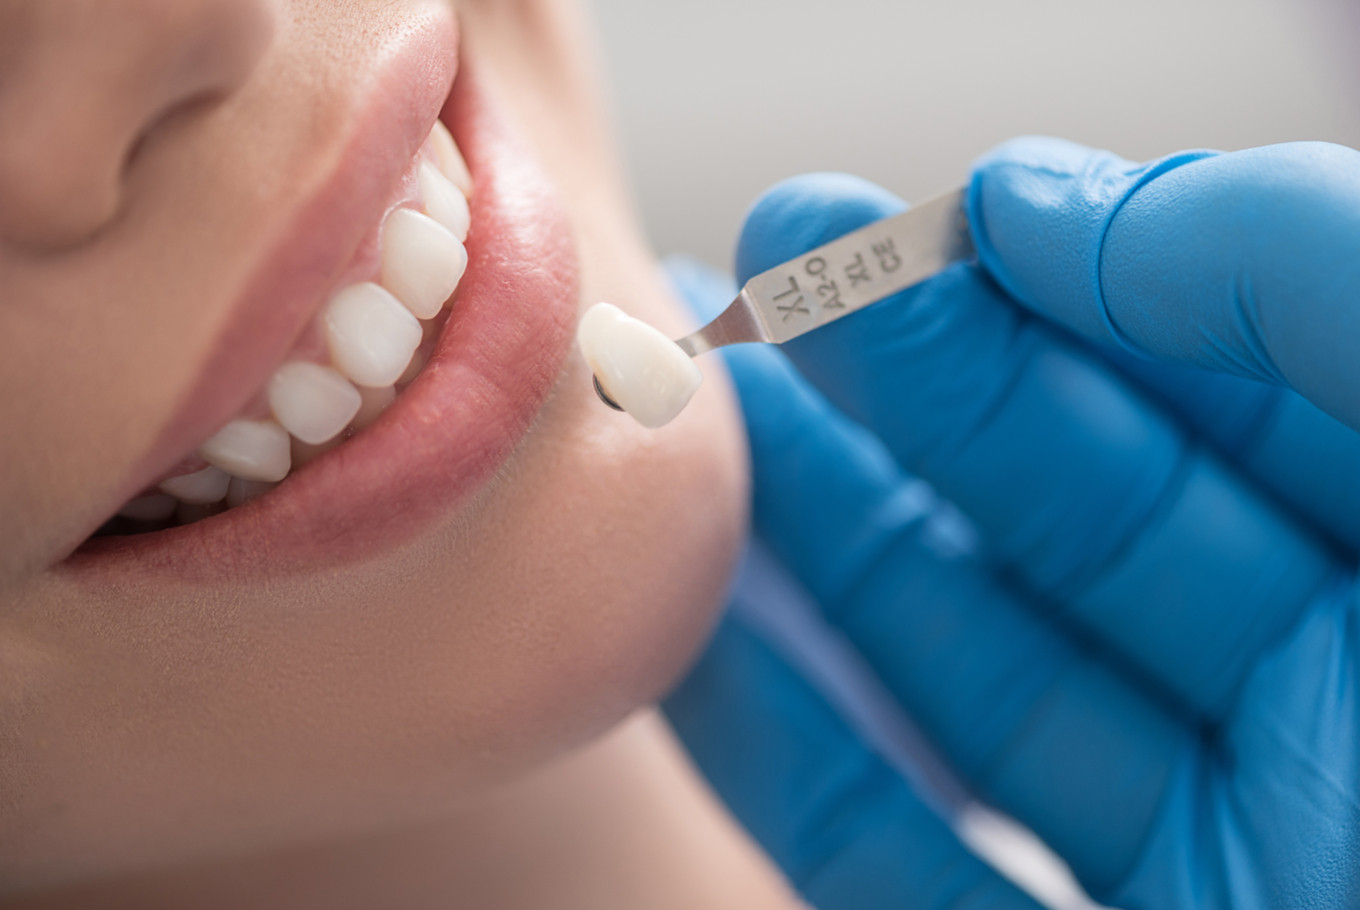 Time to be a wiser patient: Dental treatment not only about beauty